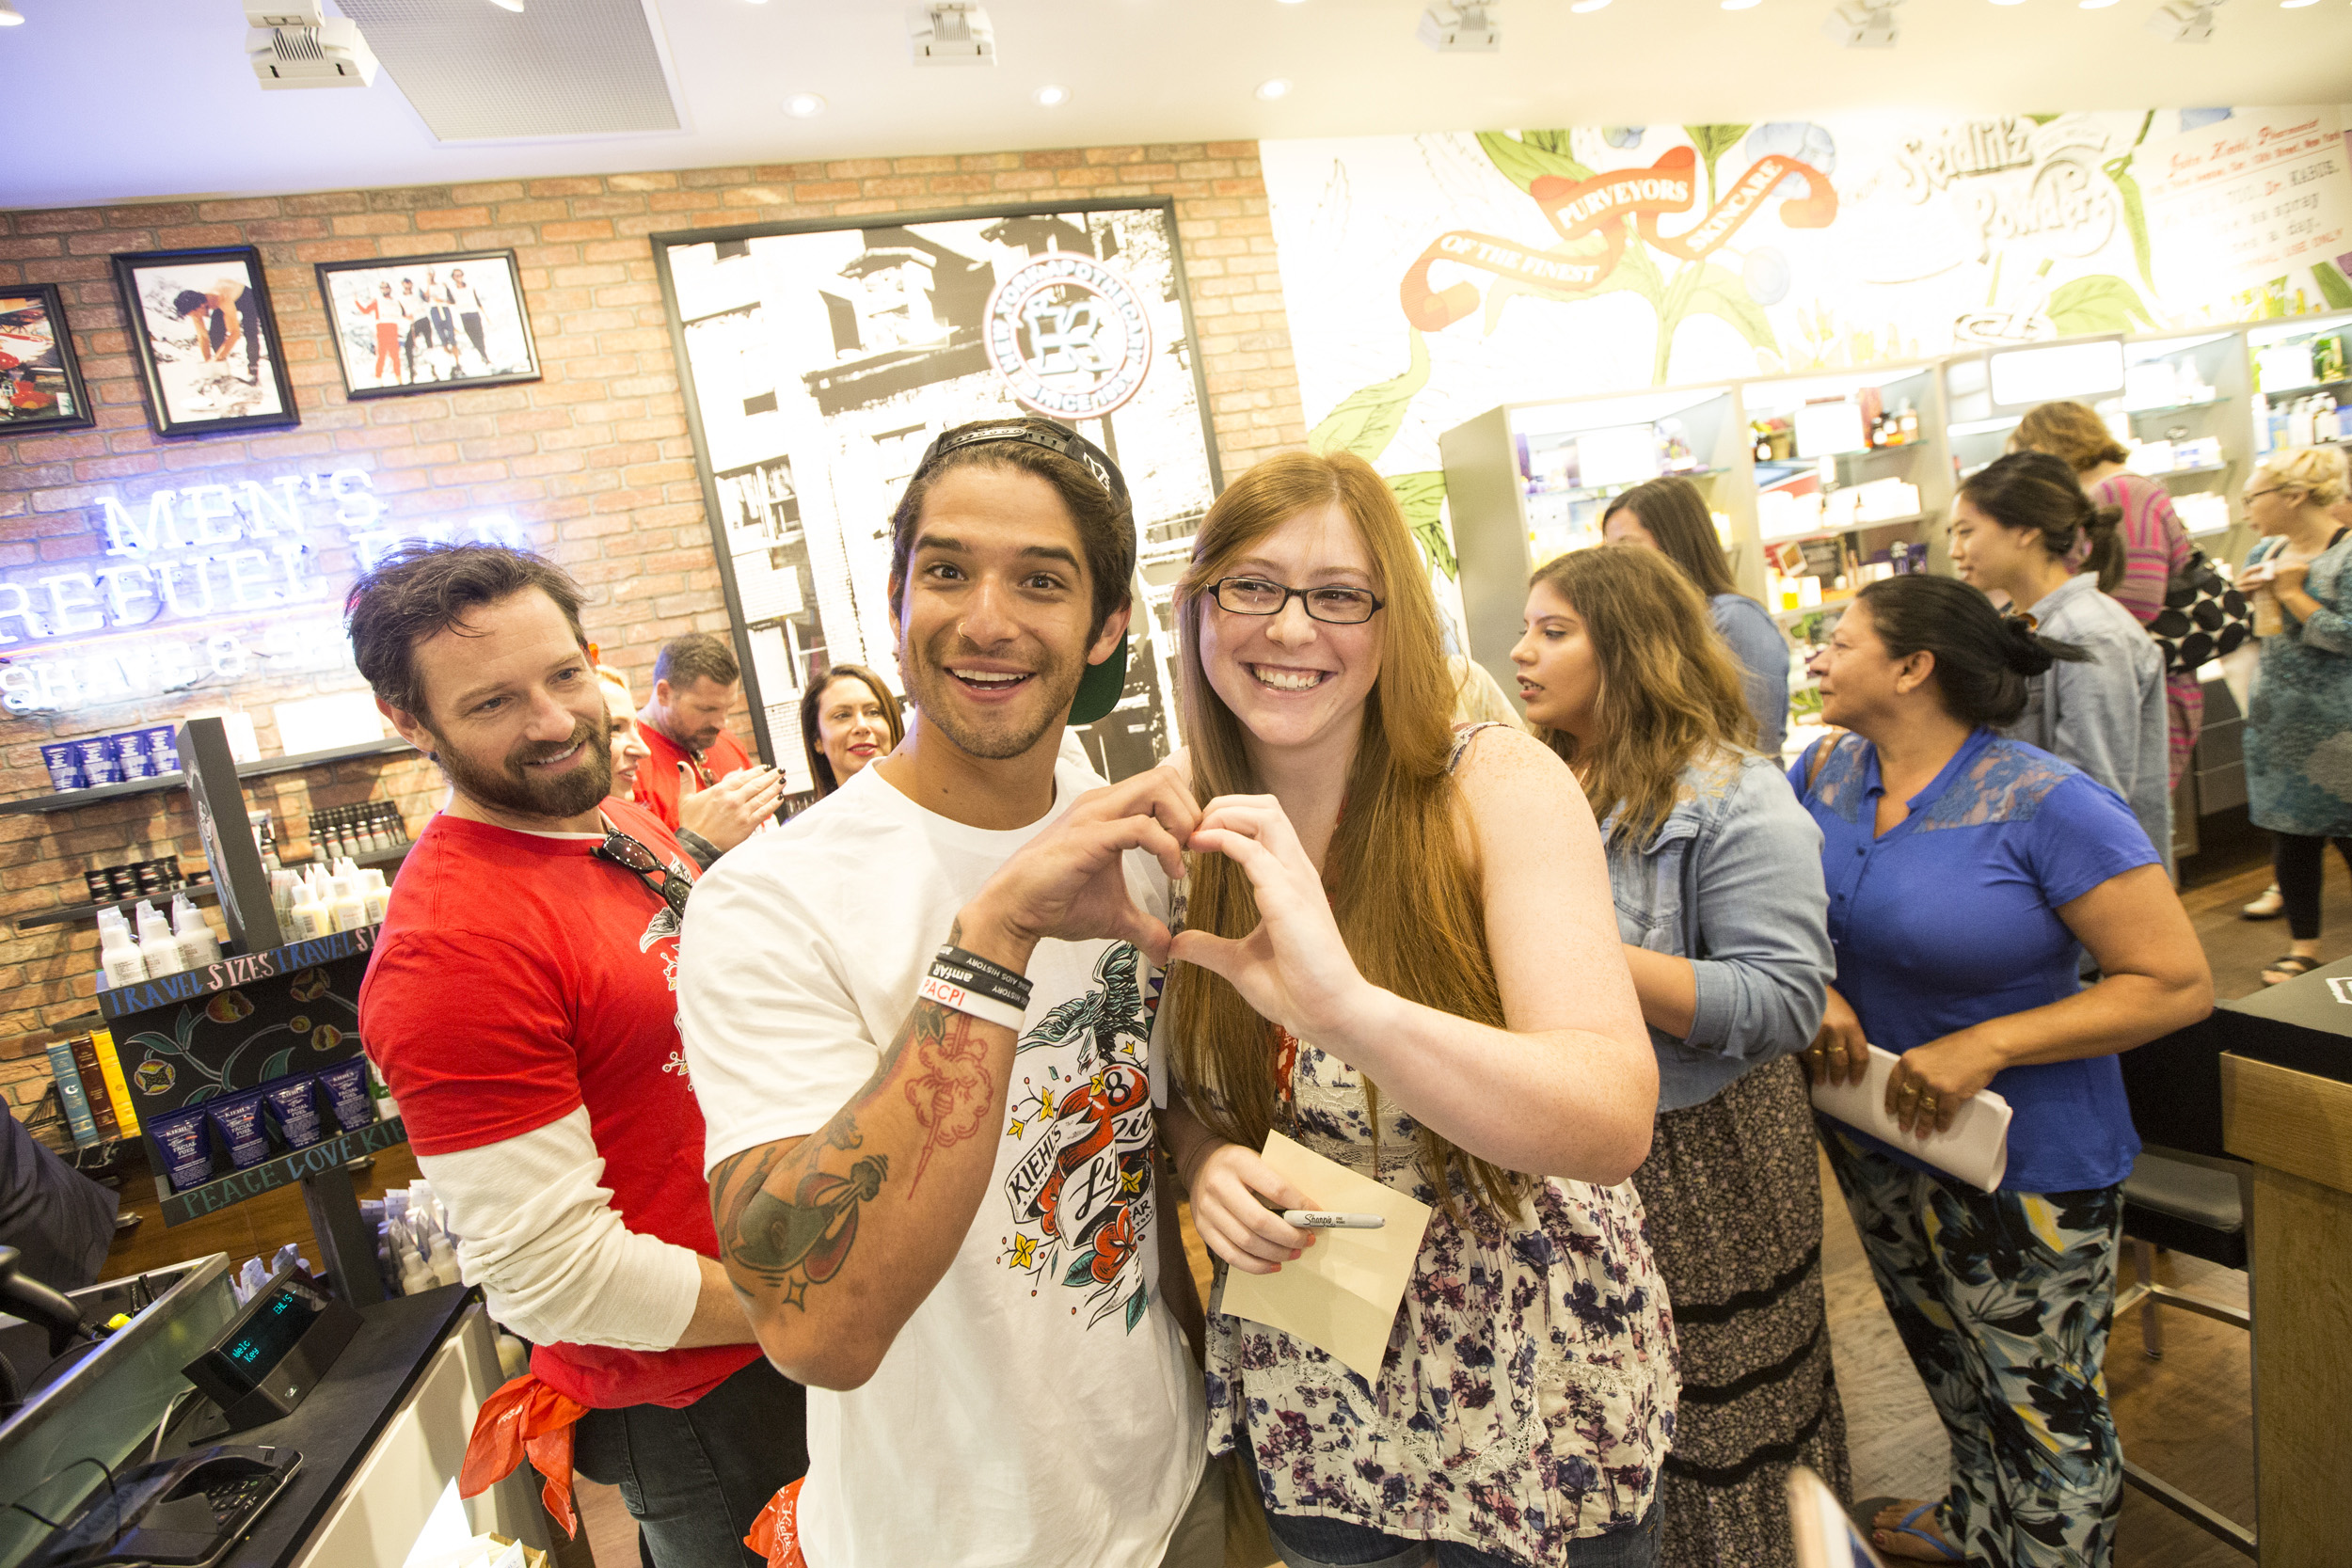 Tyler Posey with a fan. For every photo posted, featuring hands positioned in the shape of a heart, and tagging @kiehls, @amfar, and #LifeRide8 on Twitter and Instagram, Kiehl's will donate $1 to amfAR, up to $25,000.